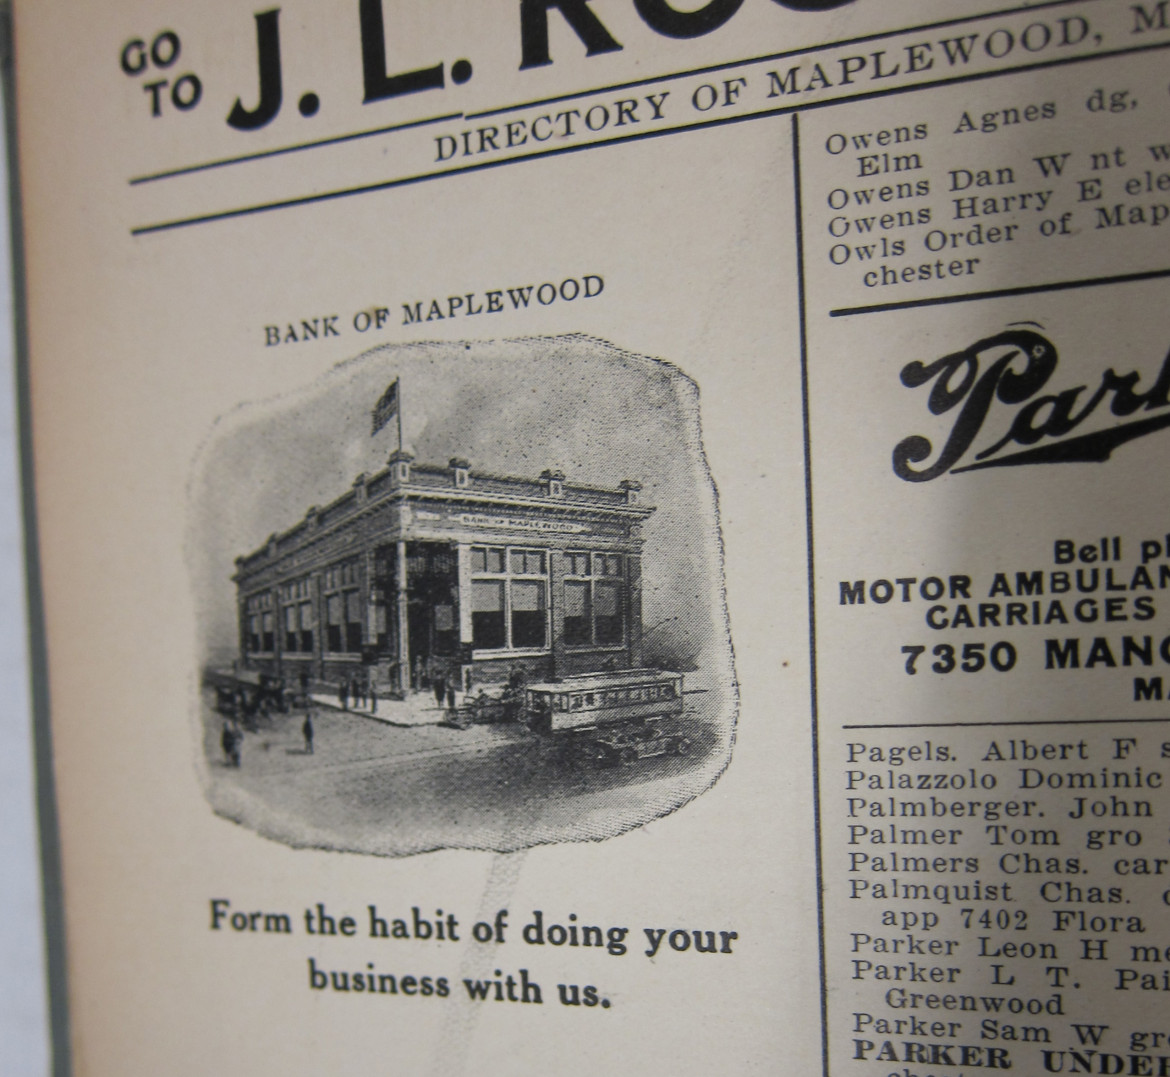 This drawing depicts what must have been the second building used by the Bank of Maplewood.